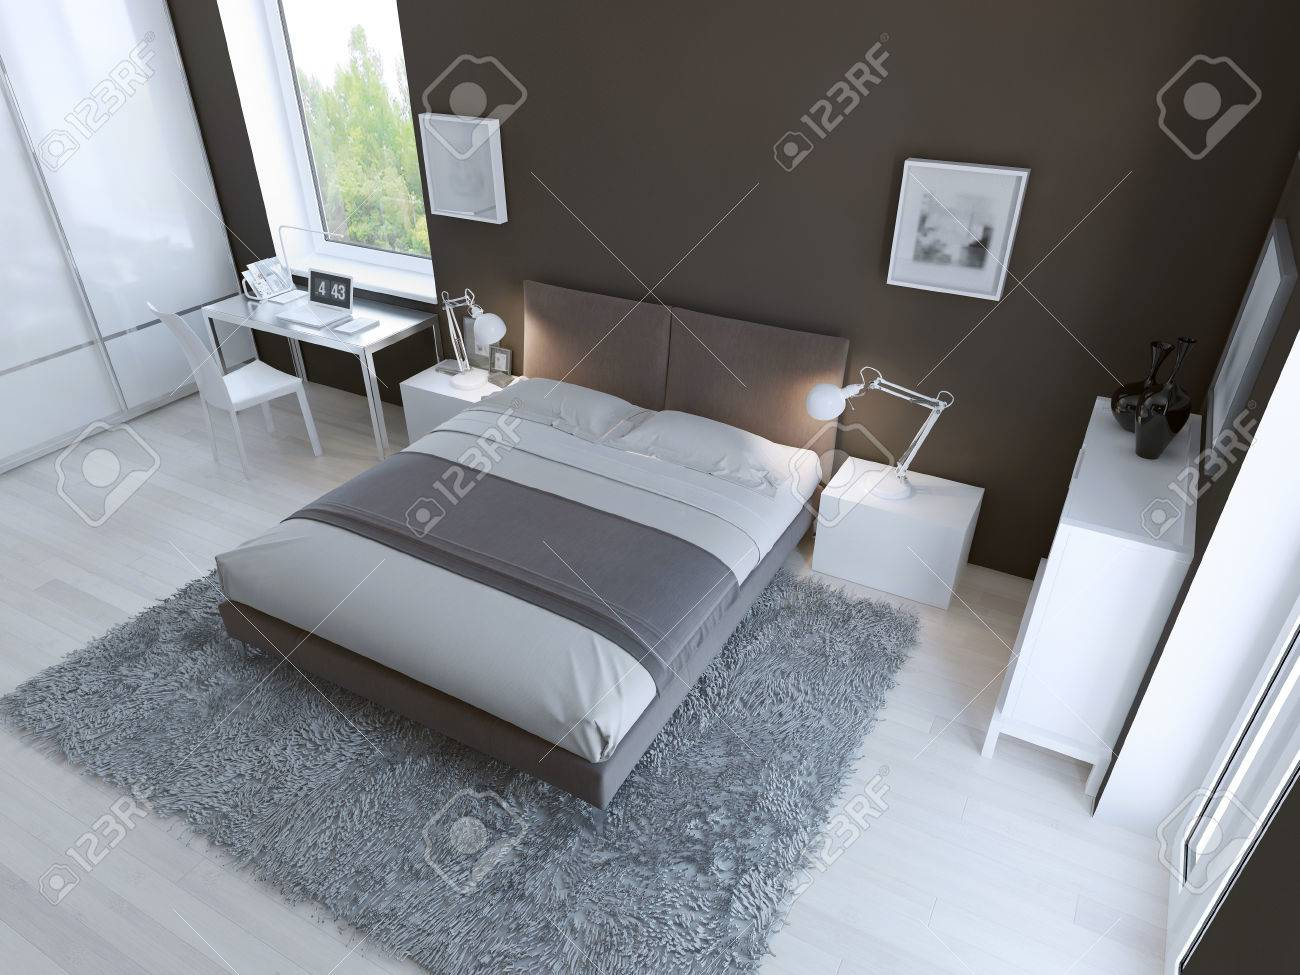 High Tech Bedroom High Tech Bedroom Interior With Thick Pile Carpet Of Light Grey